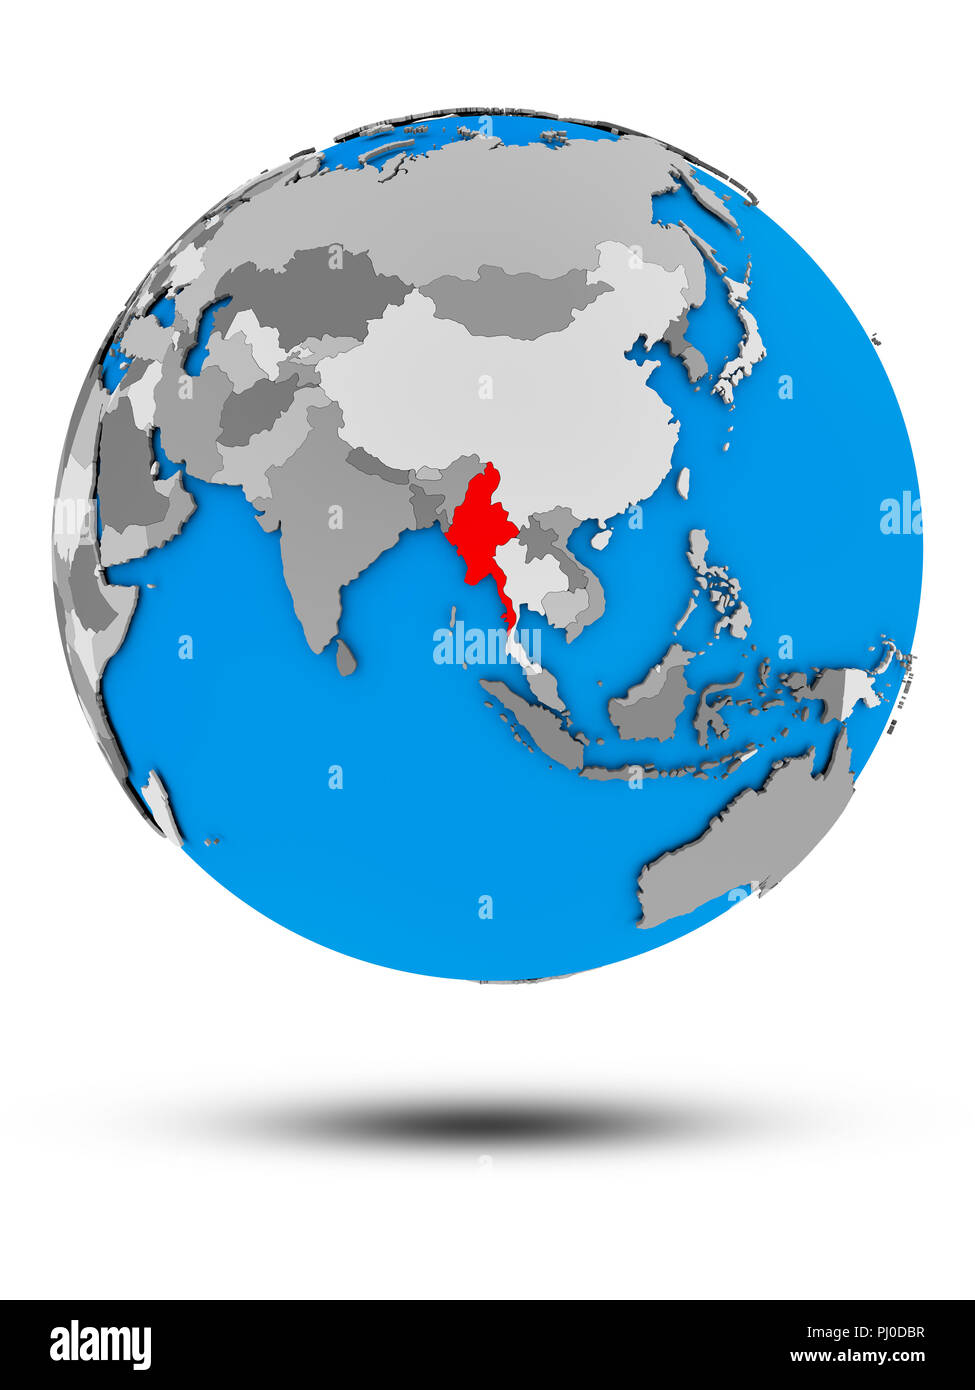 Myanmar on political globe with shadow isolated on white background. 3D illustration. - Stock Image